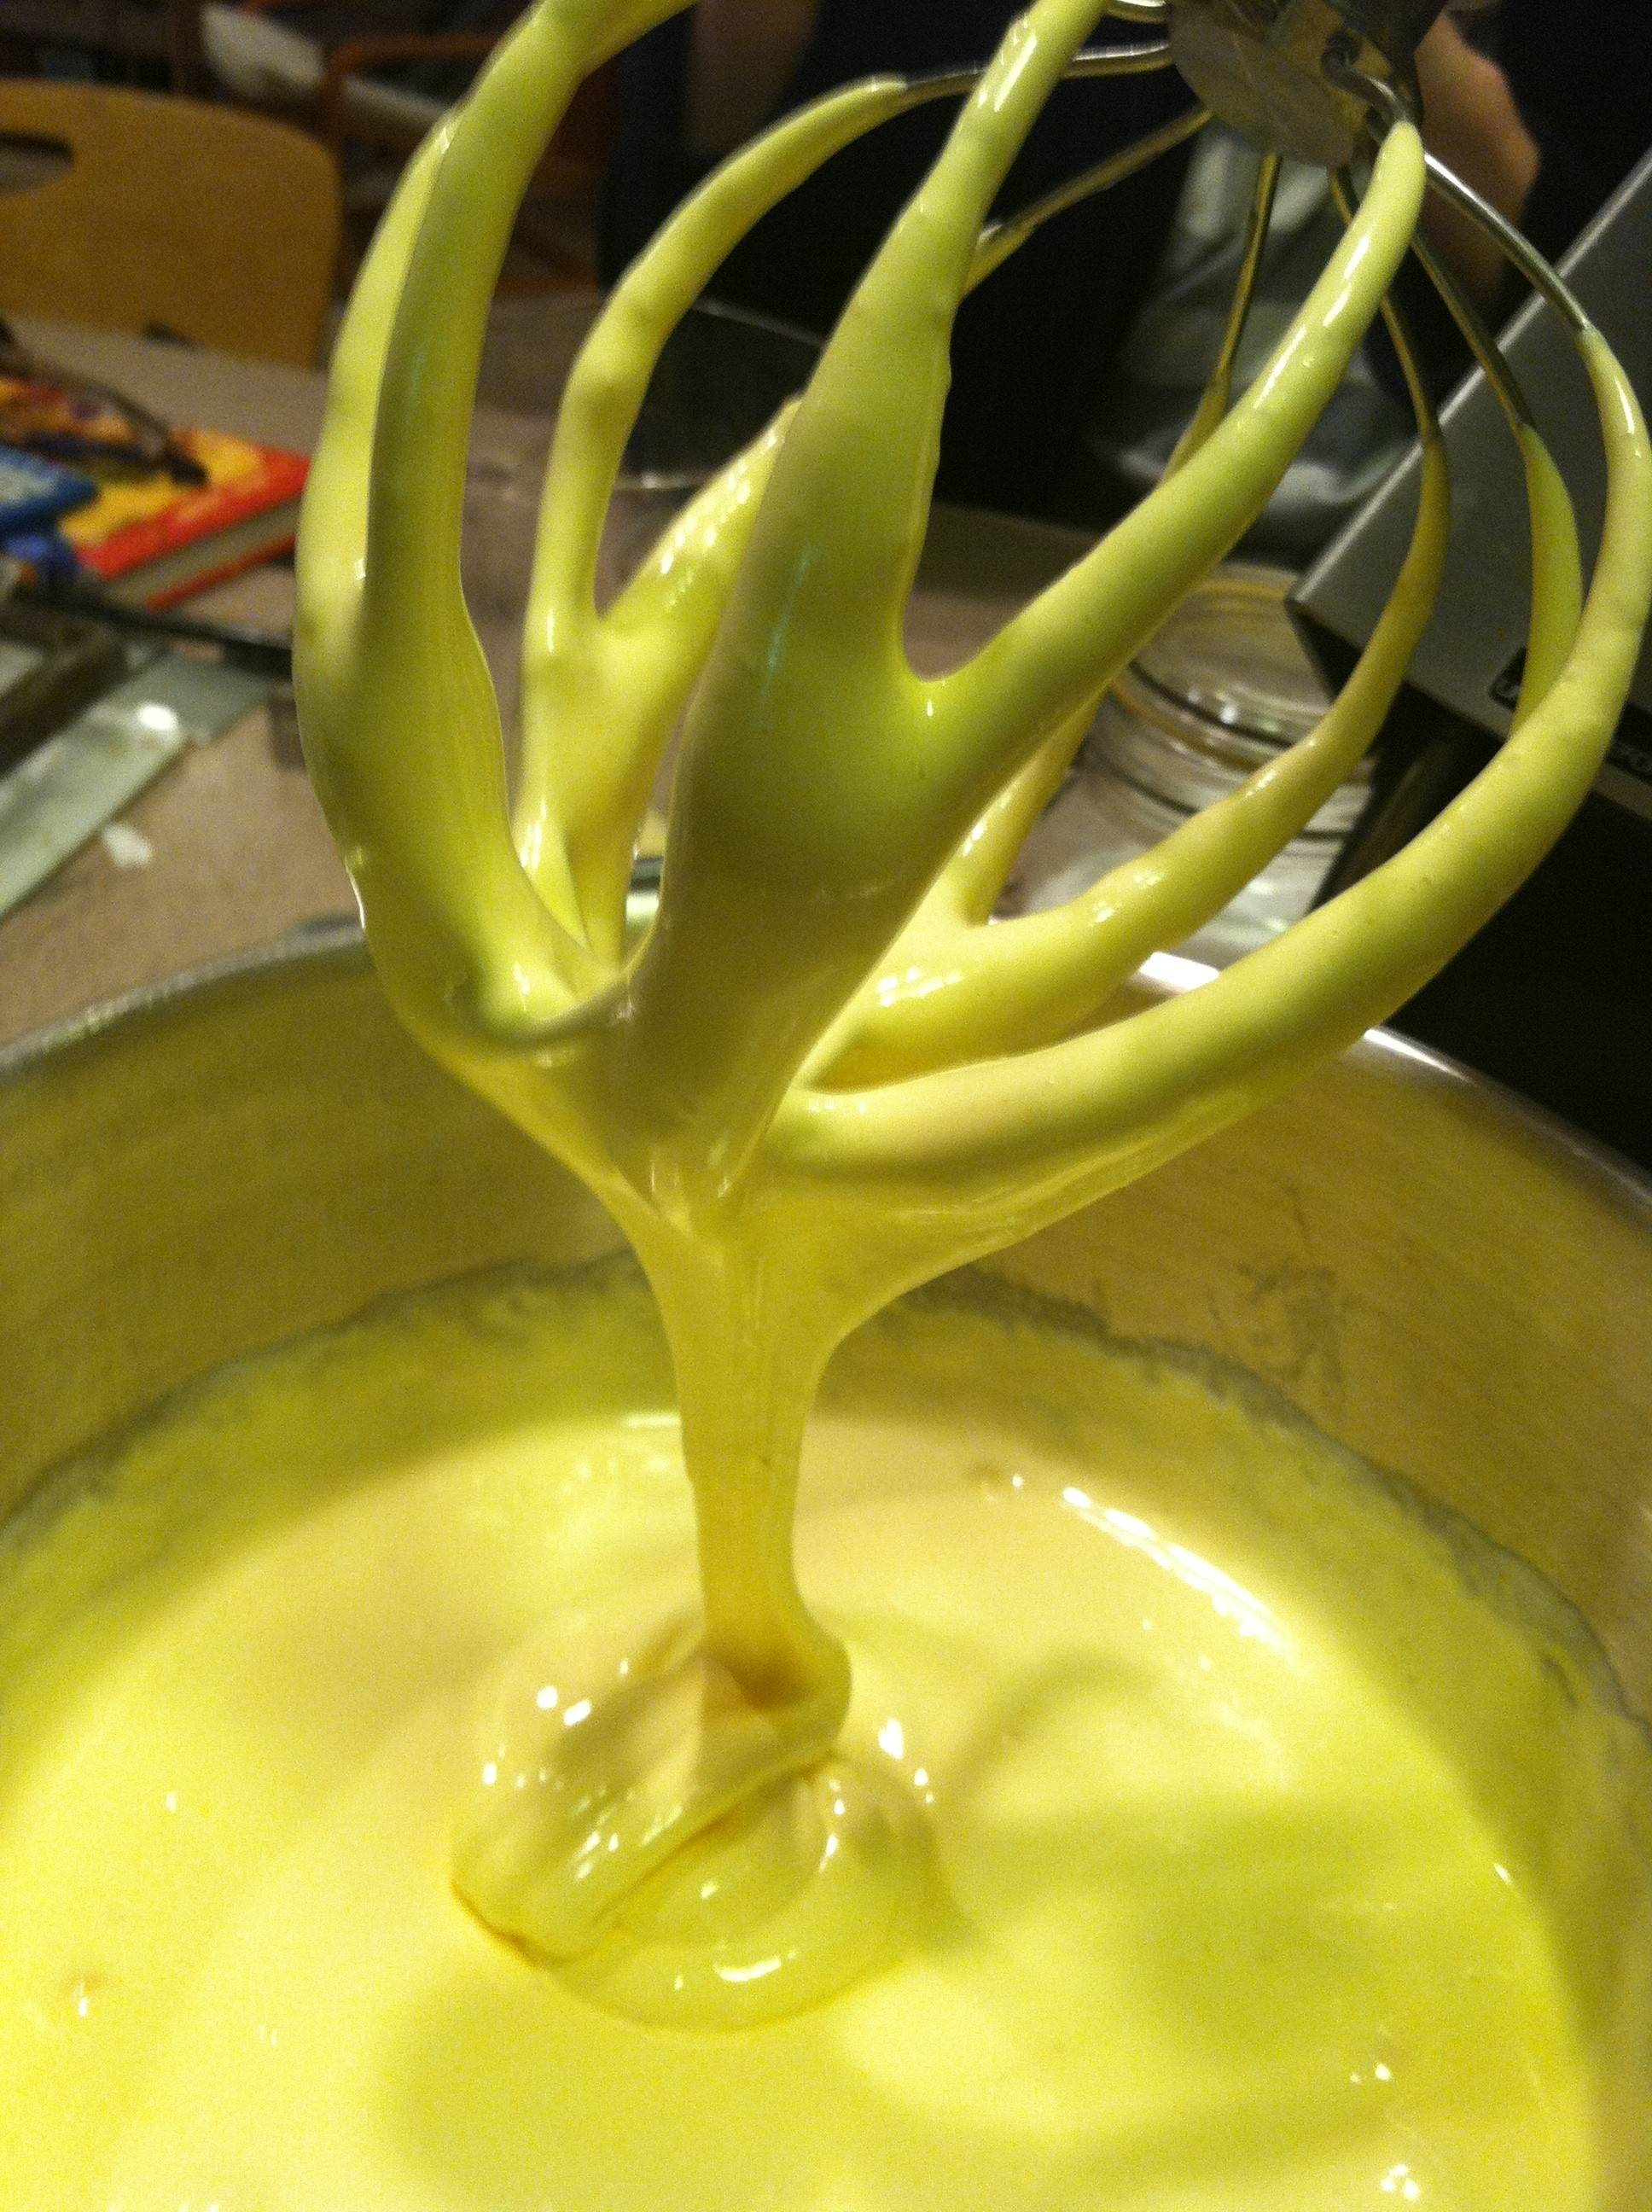 The gelatin-sugar mixture is ready when thick ribbons slowly flow off the beater.